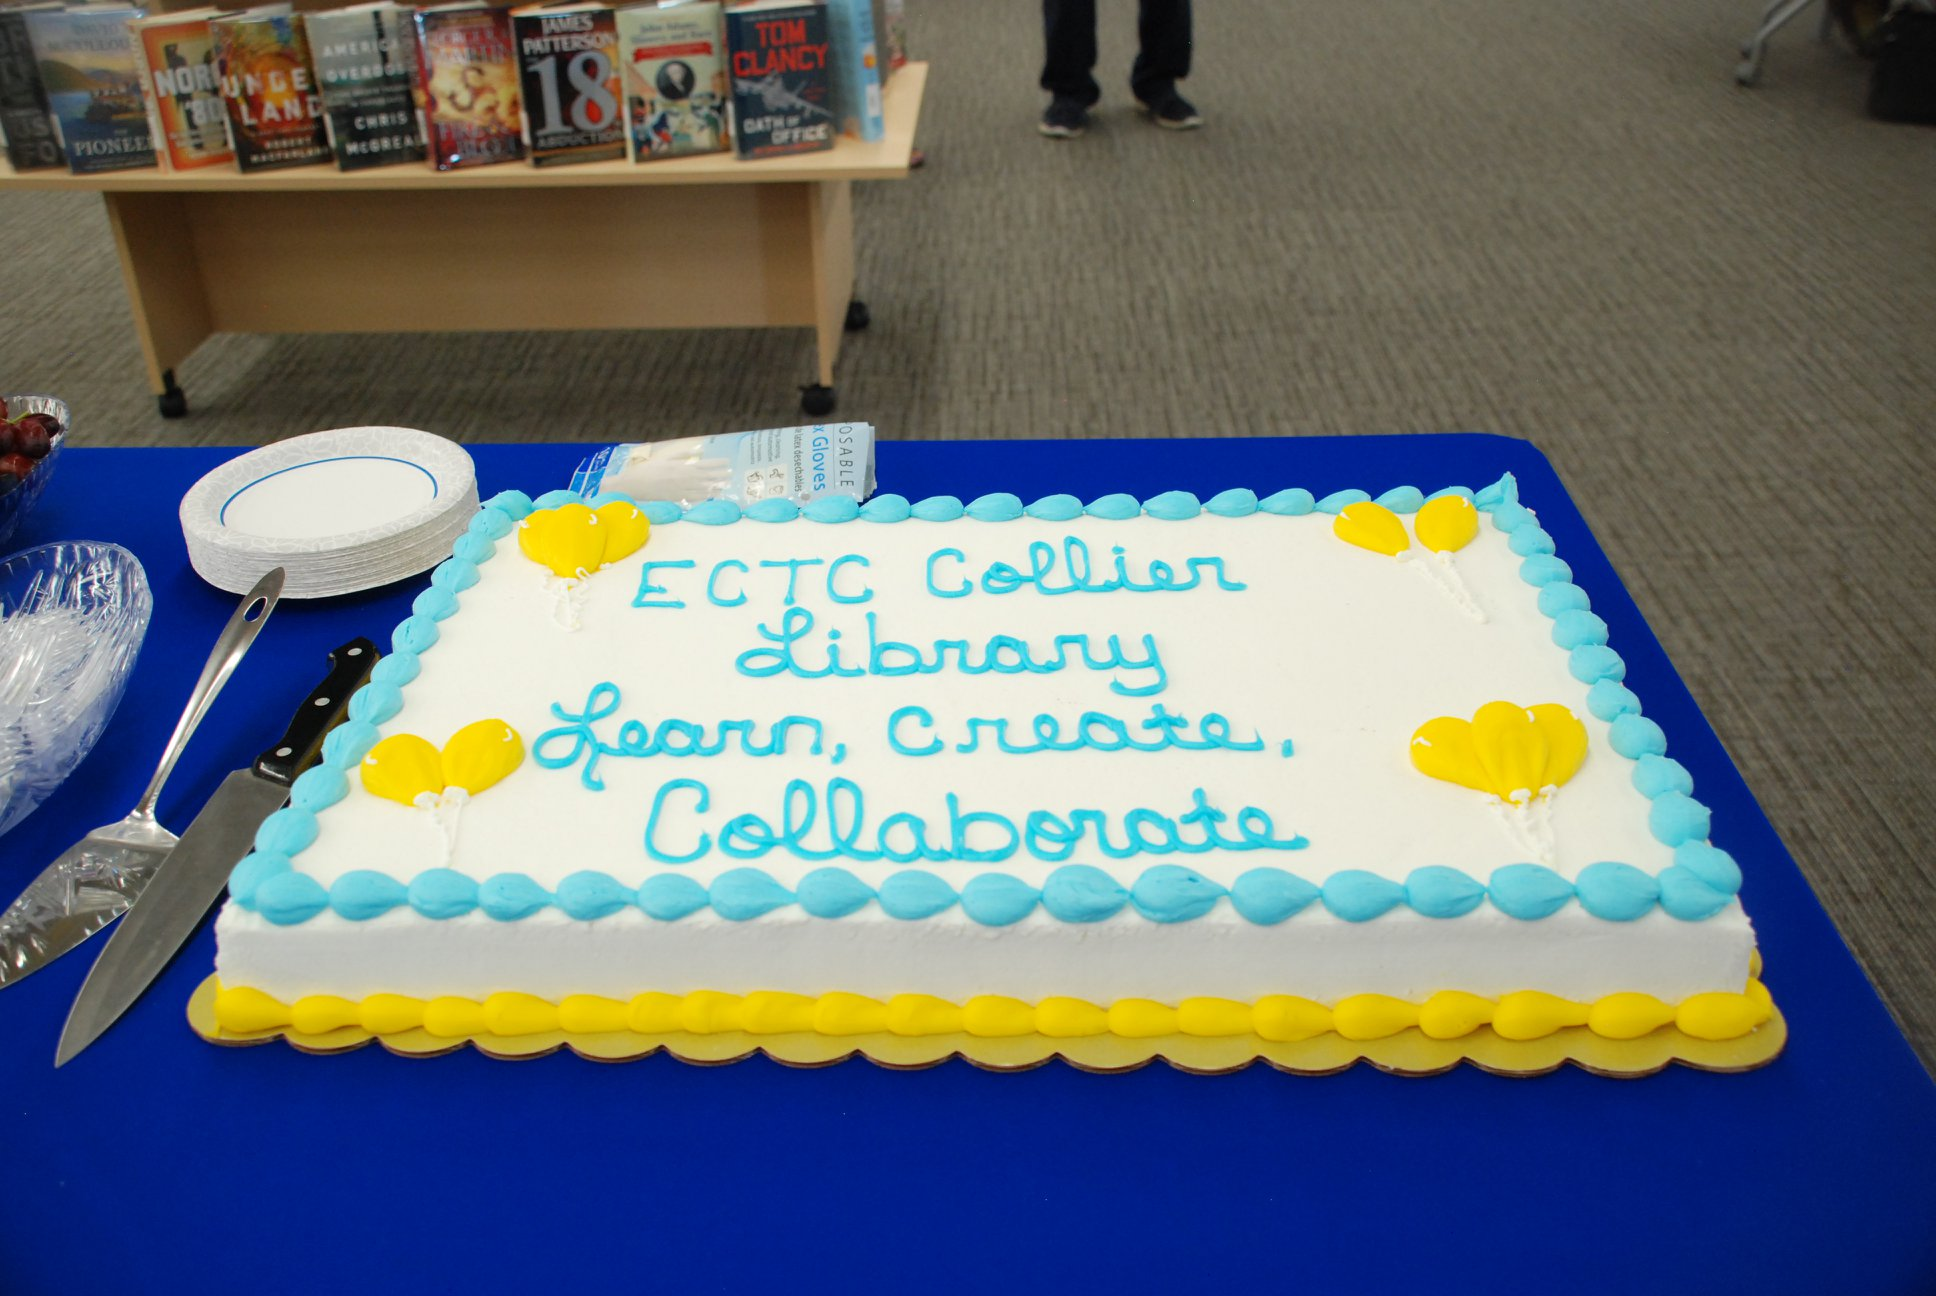 Cake served at ECTC Library Ribbon Cutting